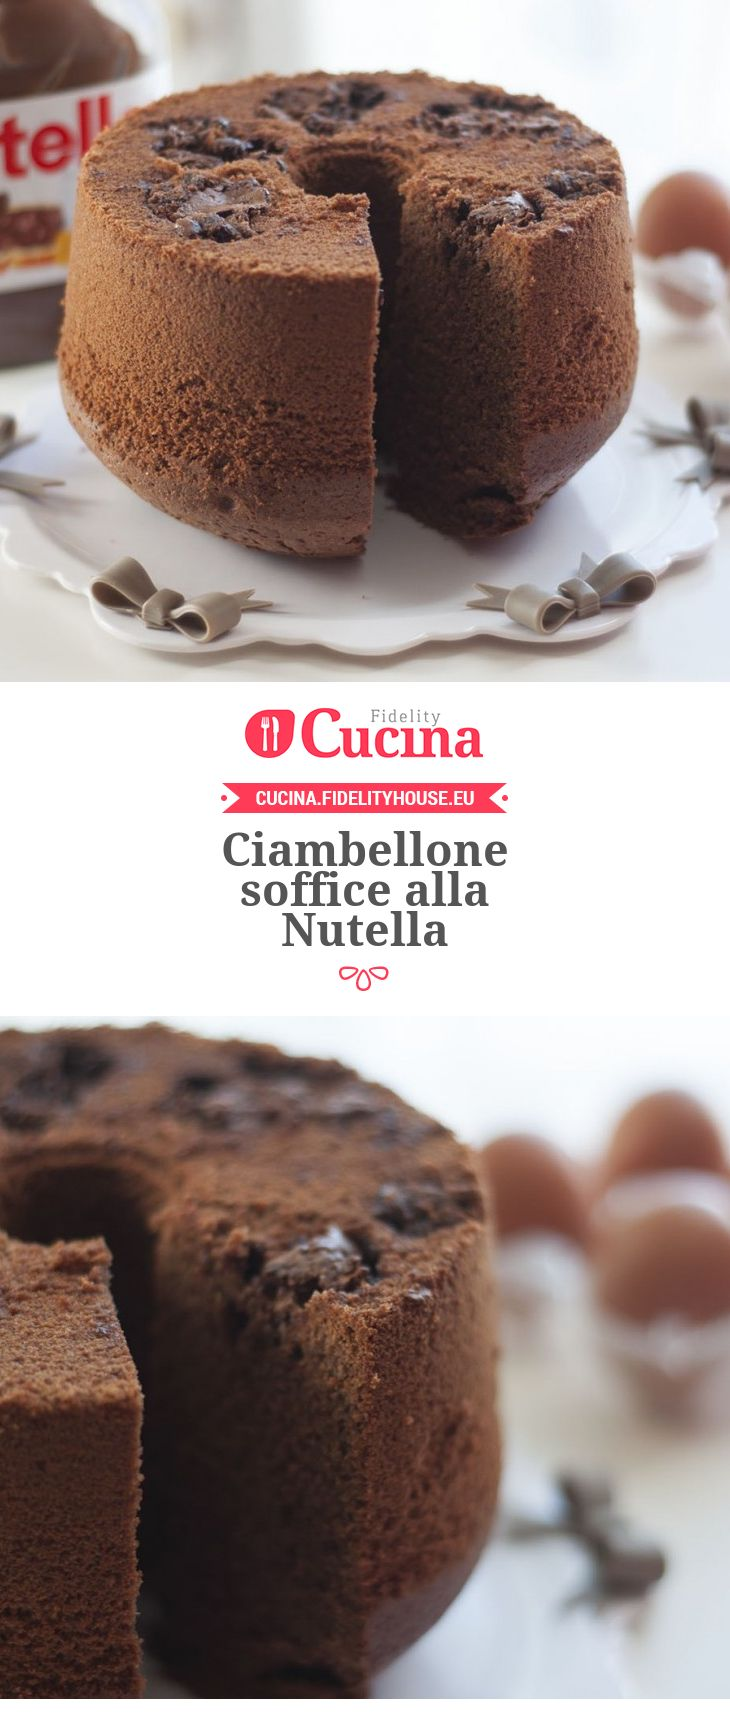 Ciambellone soffice alla Nutella della nostra utente Chiara. Unisciti alla nostra Community ed invia le tue ricette!  ✈✈✈ Don't miss your chance to win a Free International Roundtrip Ticket to Italy from anywhere in the world **GIVEAWAY** ✈✈✈ https://thedecisionmoment.com/free-roundtrip-tickets-to-europe-italy/